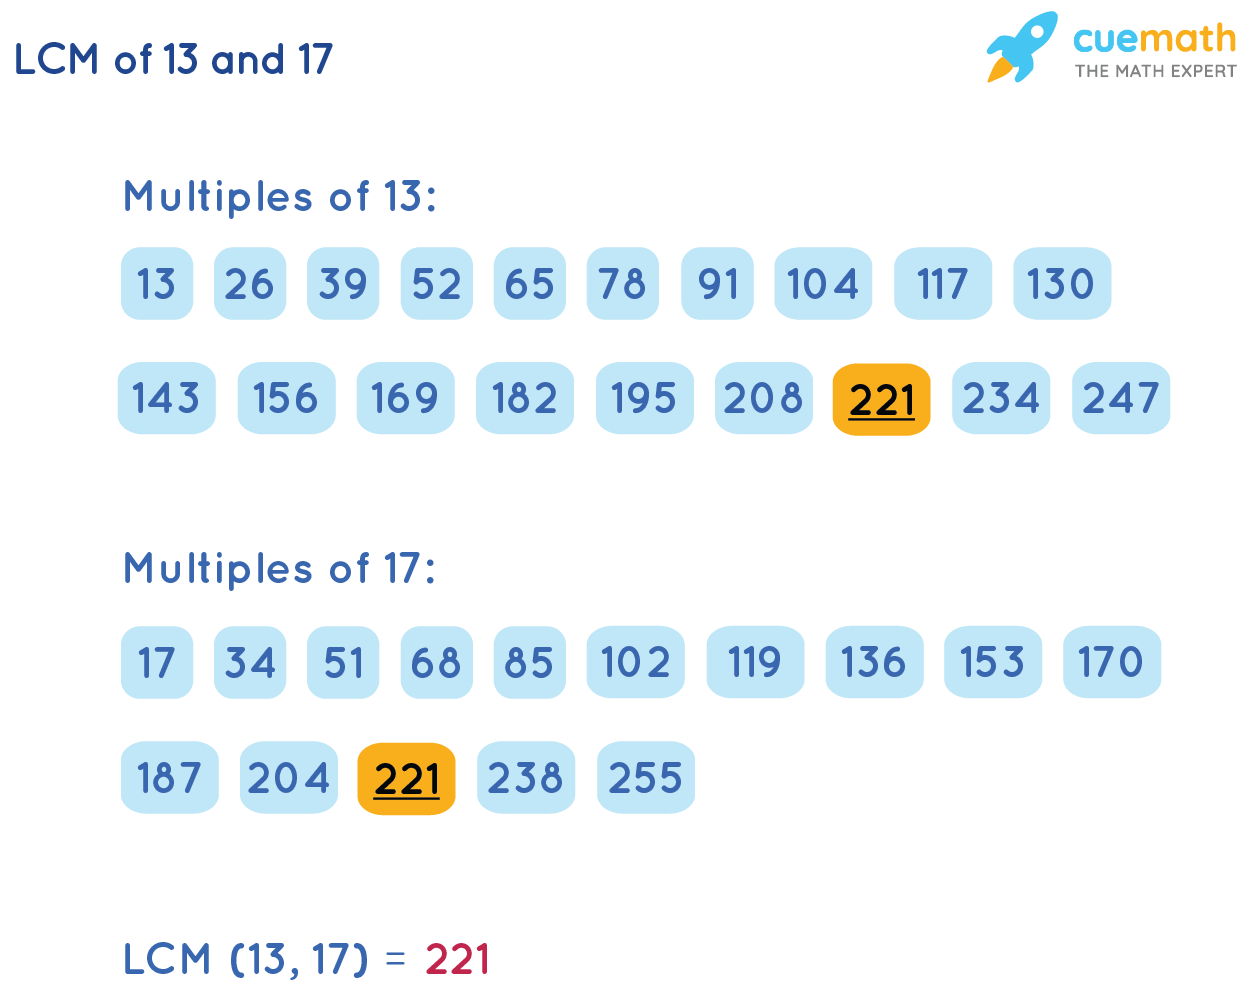 LCM of 13 and 17by Listing Method